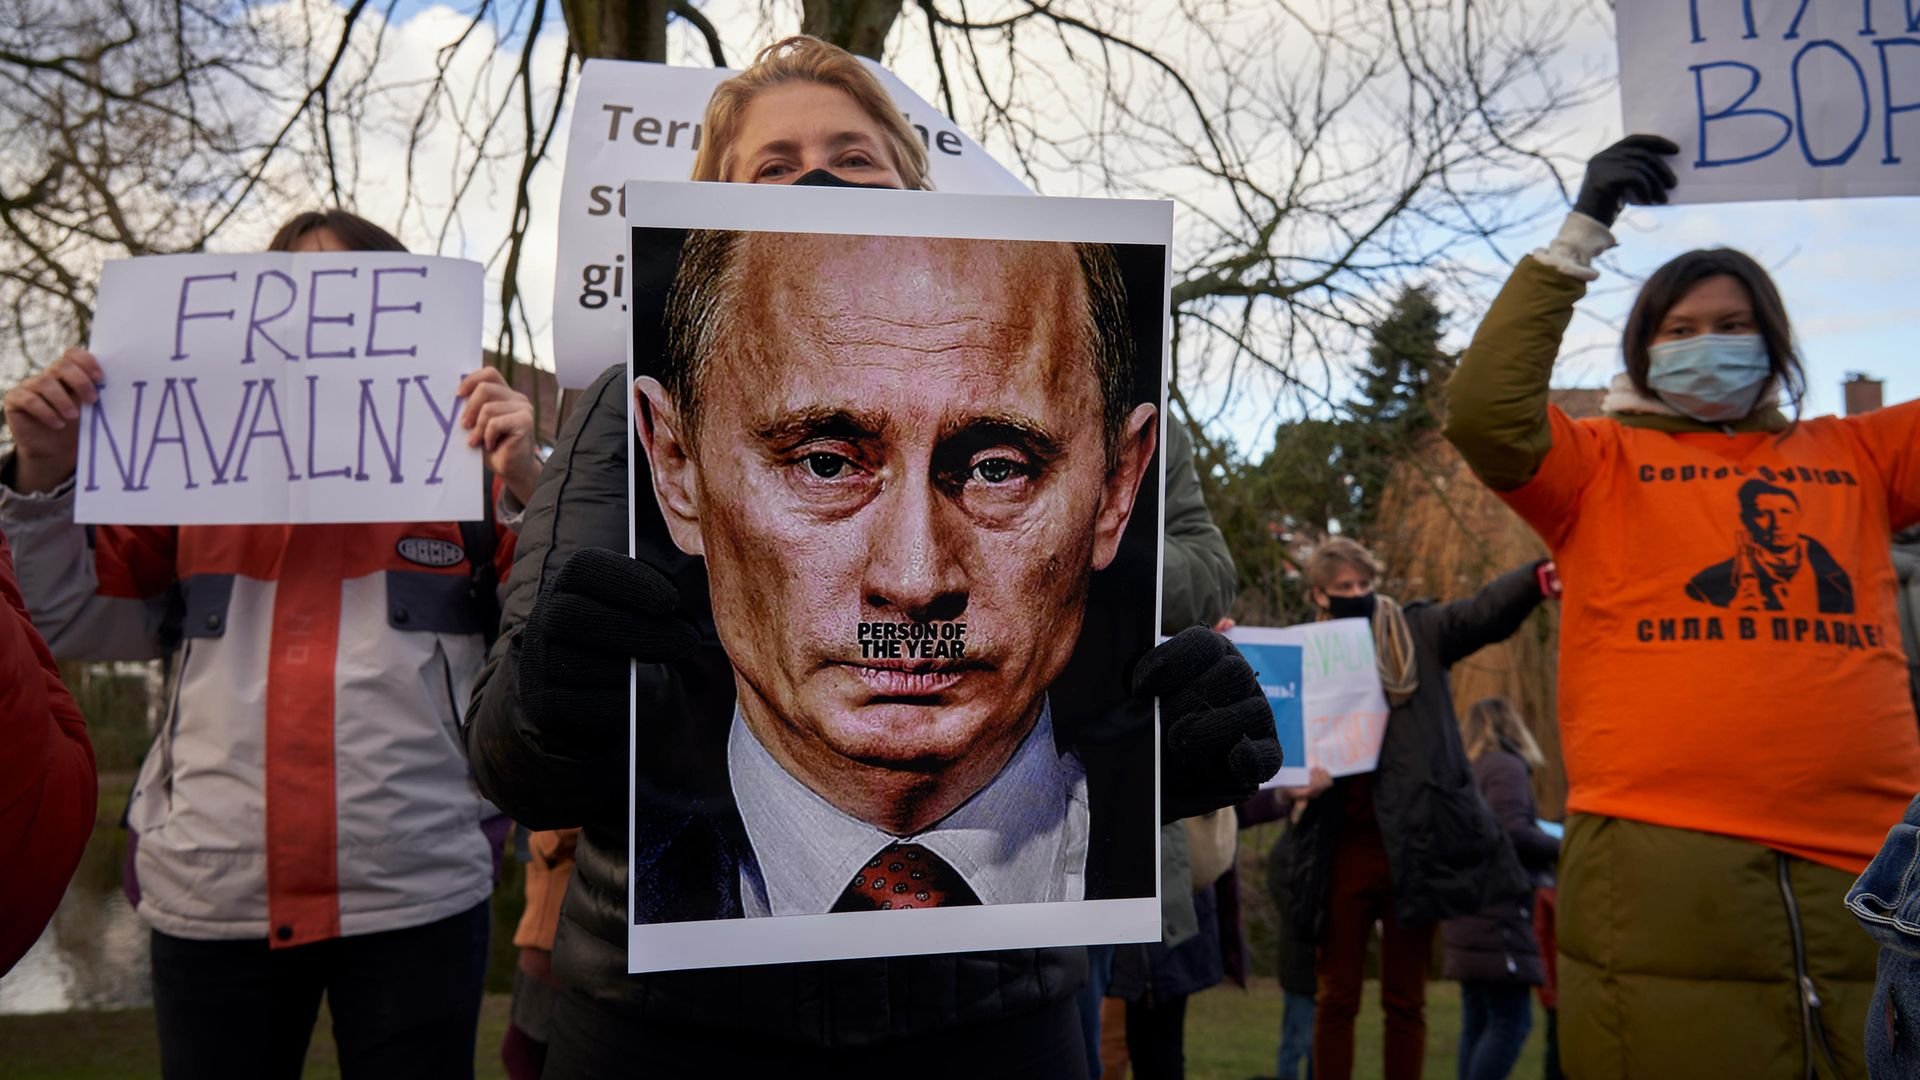 Demonstrators hold up banners in front of the Russian embassy in The Hague, Netherlands - Credit: Getty Images